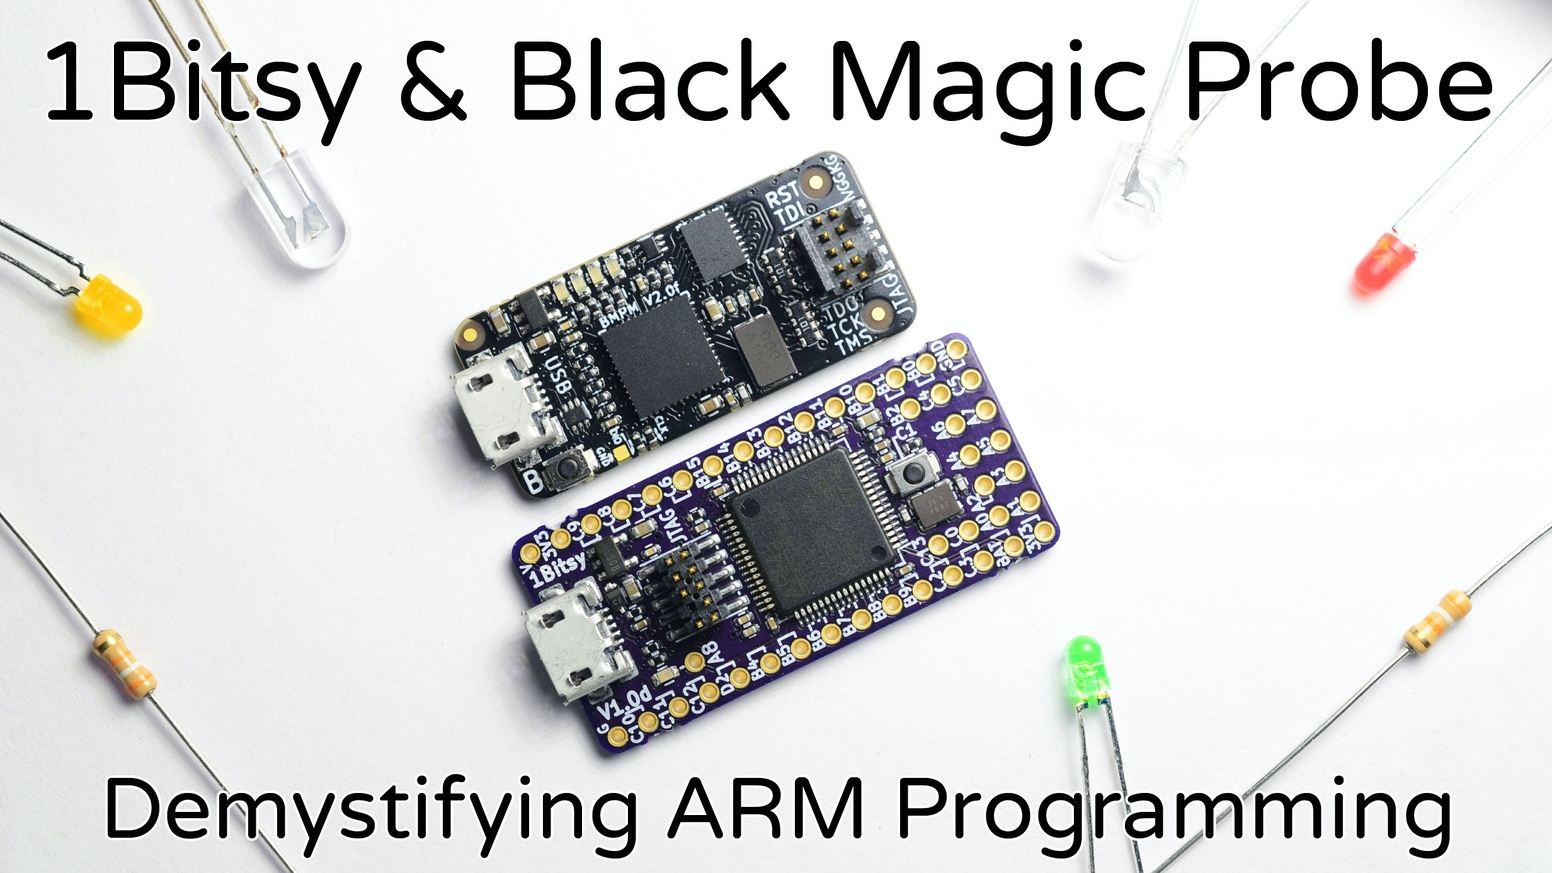 1Bitsy & Black Magic Probe - Demystifying ARM Programming by Piotr